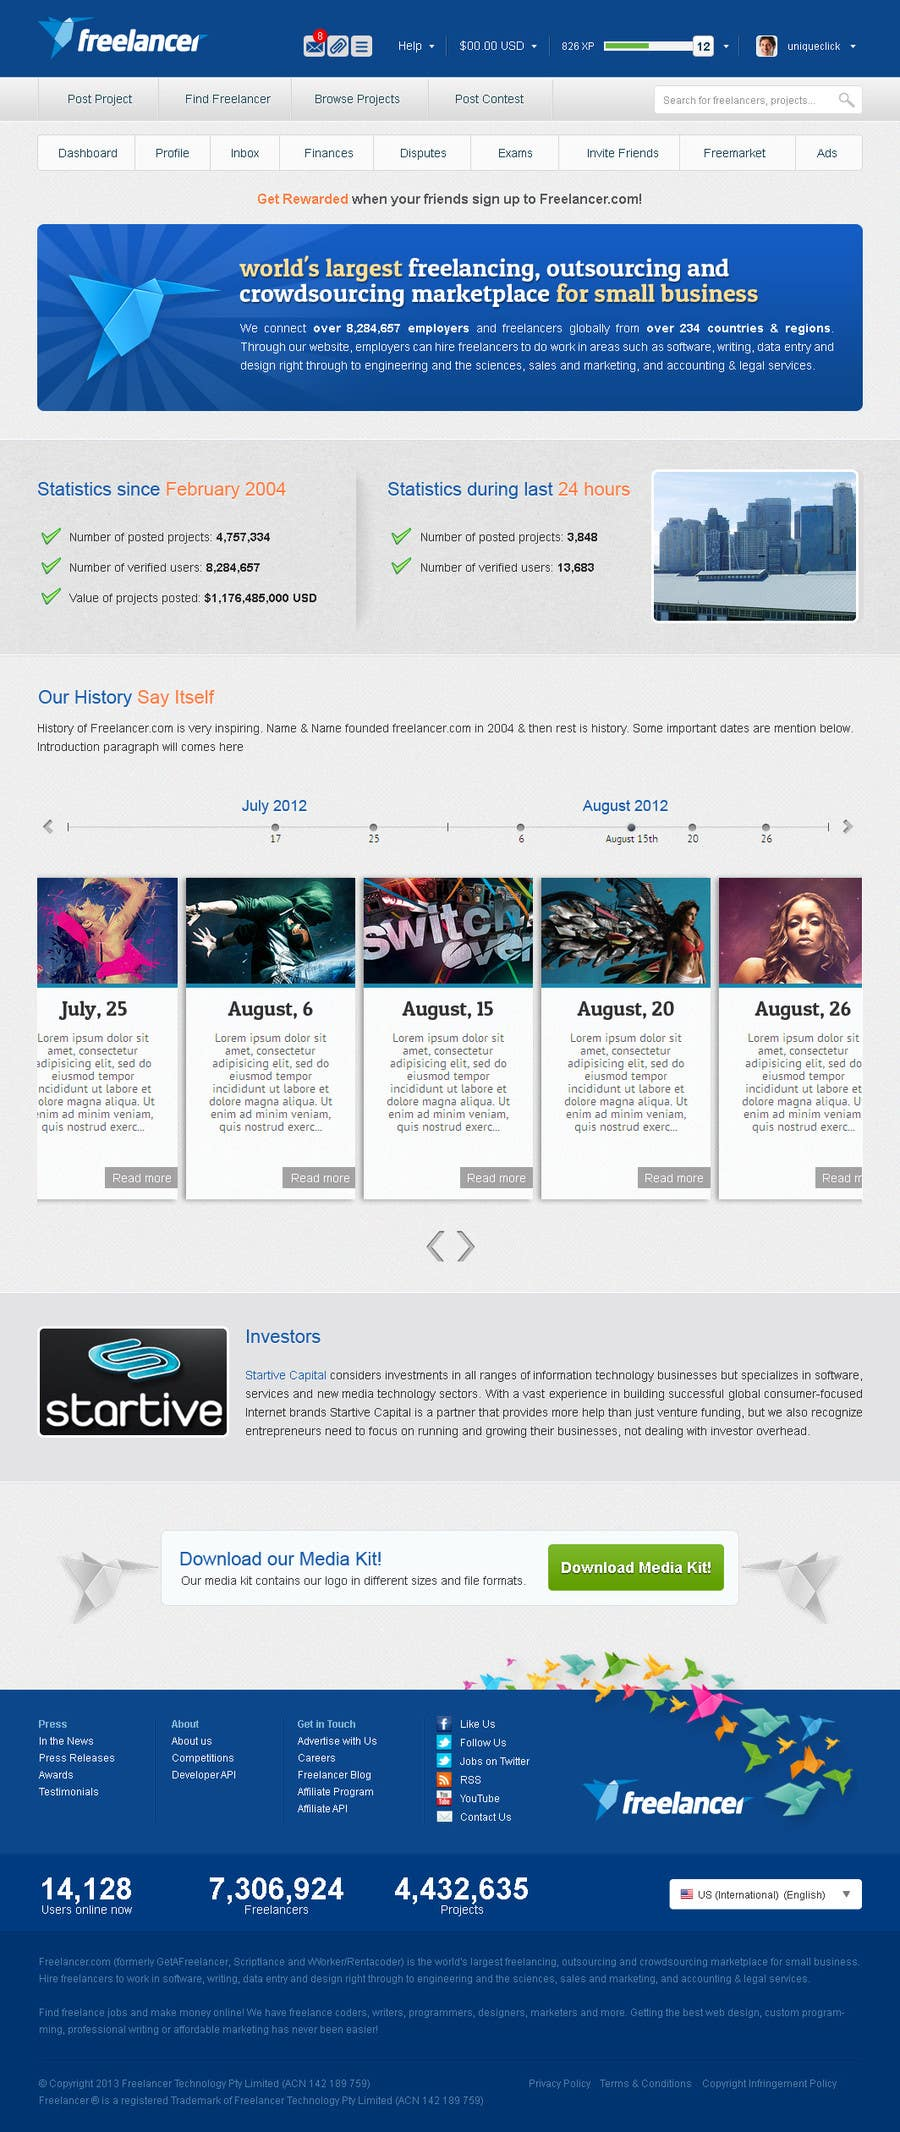 Bài tham dự cuộc thi #                                        5                                      cho                                         Create a Website Mockup for the Freelancer.com About Us Page